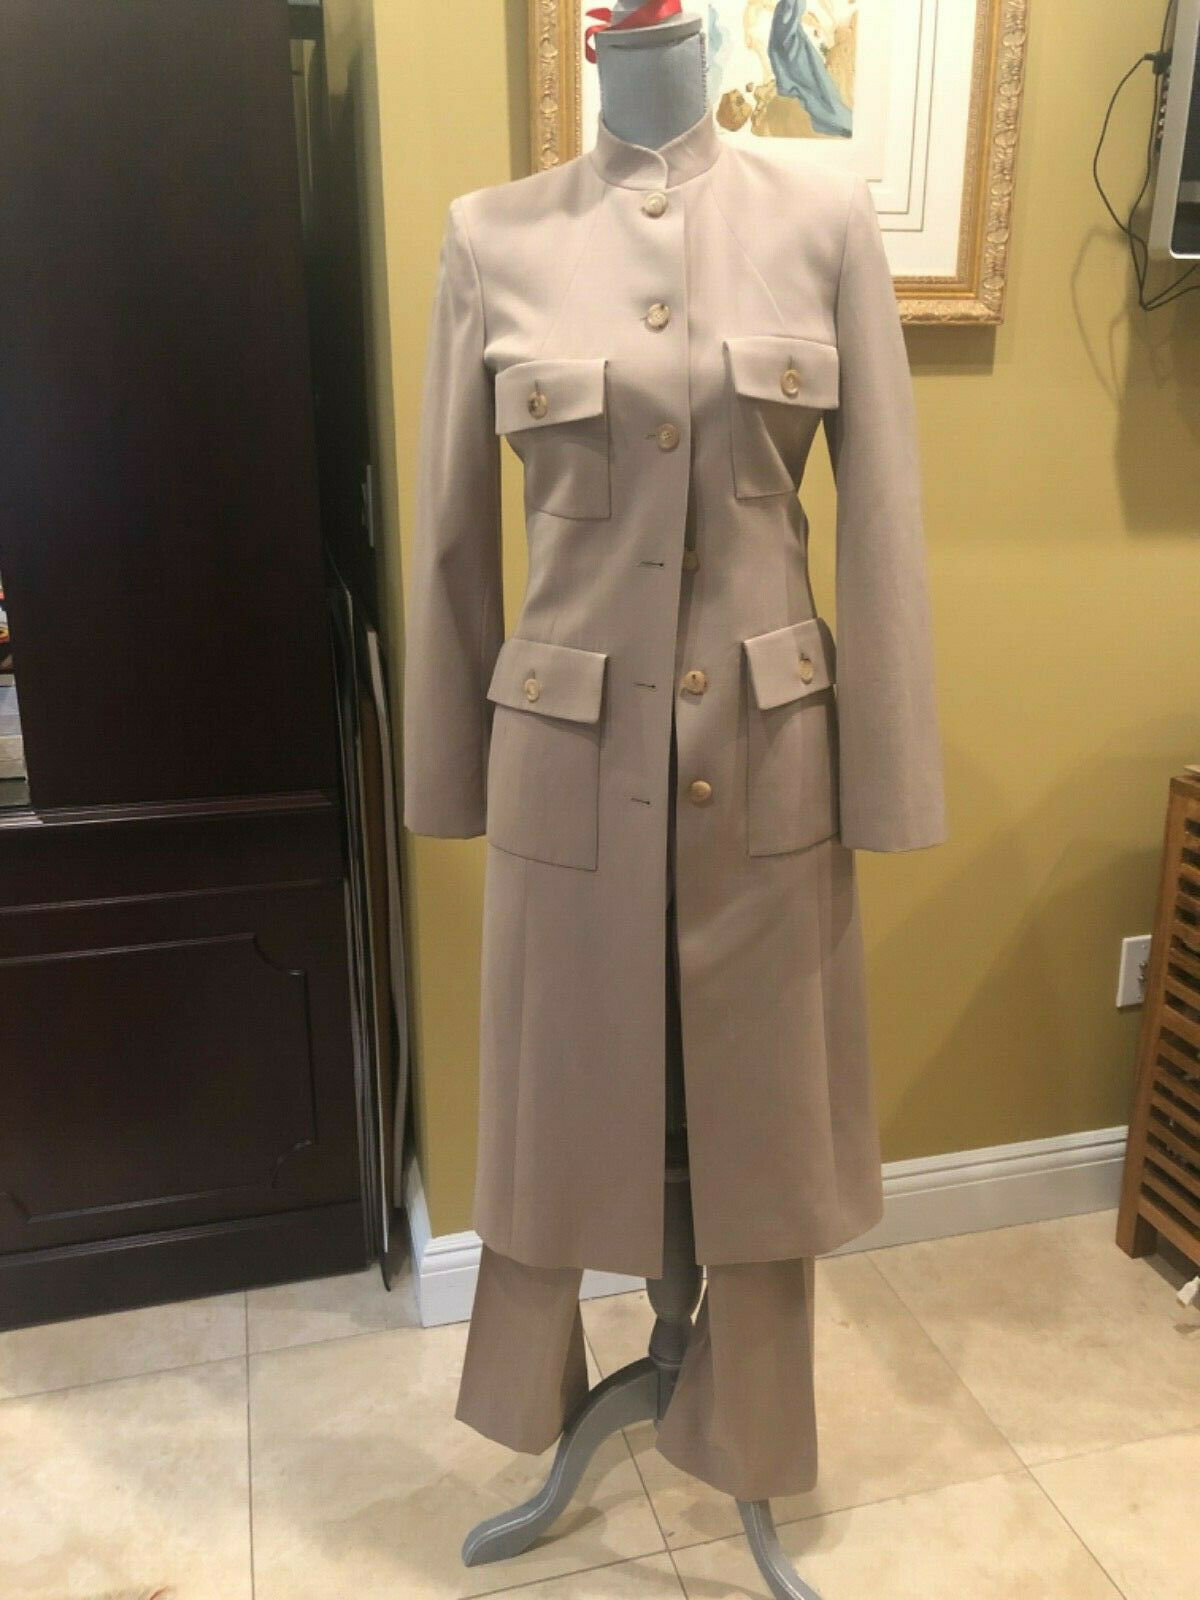 Celine Made in France Taupe 3 pc Suit Skirt Skirt Skirt and Pants sz 36 262